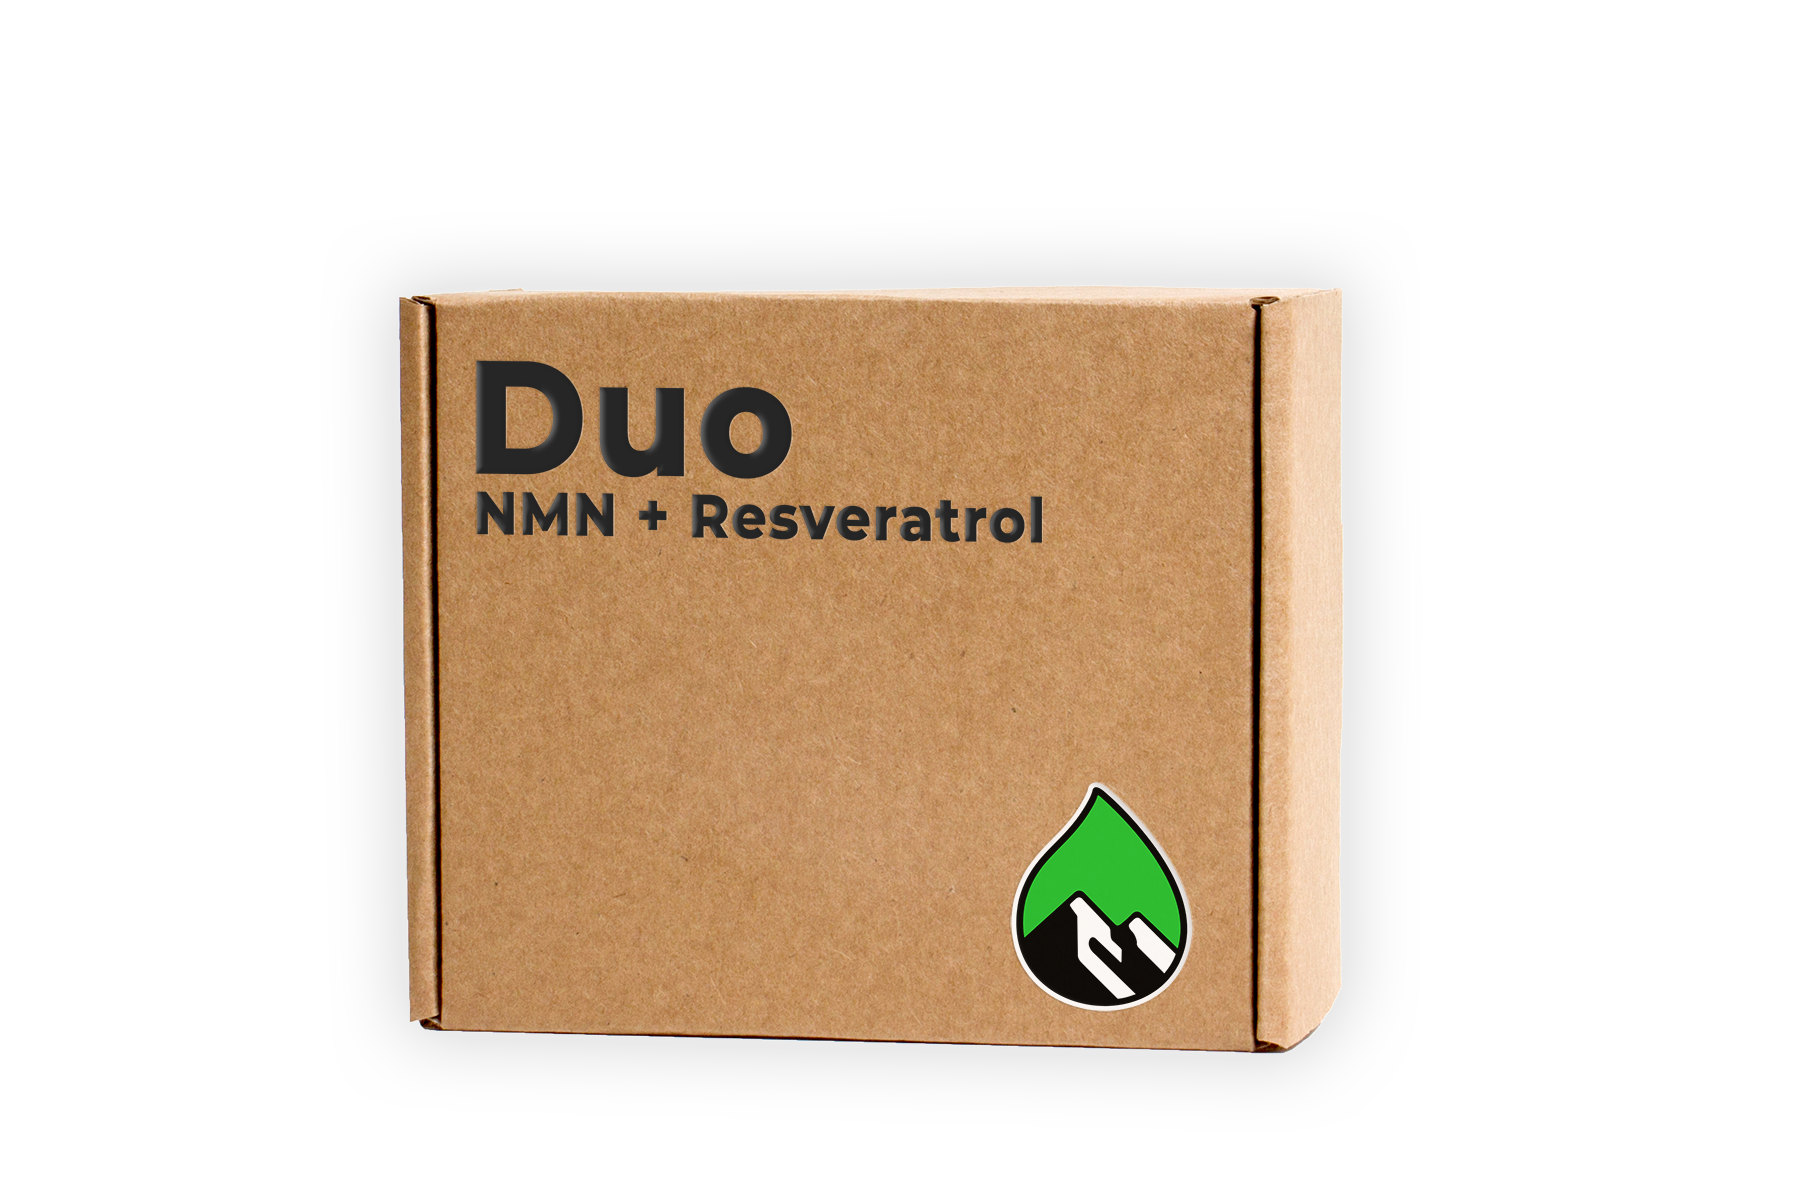 NMN is a precursor for NAD+ production. Combined with Resveratrol, this daily supplementation ensures maximum NAD+ production and enhanced midochondrial function.